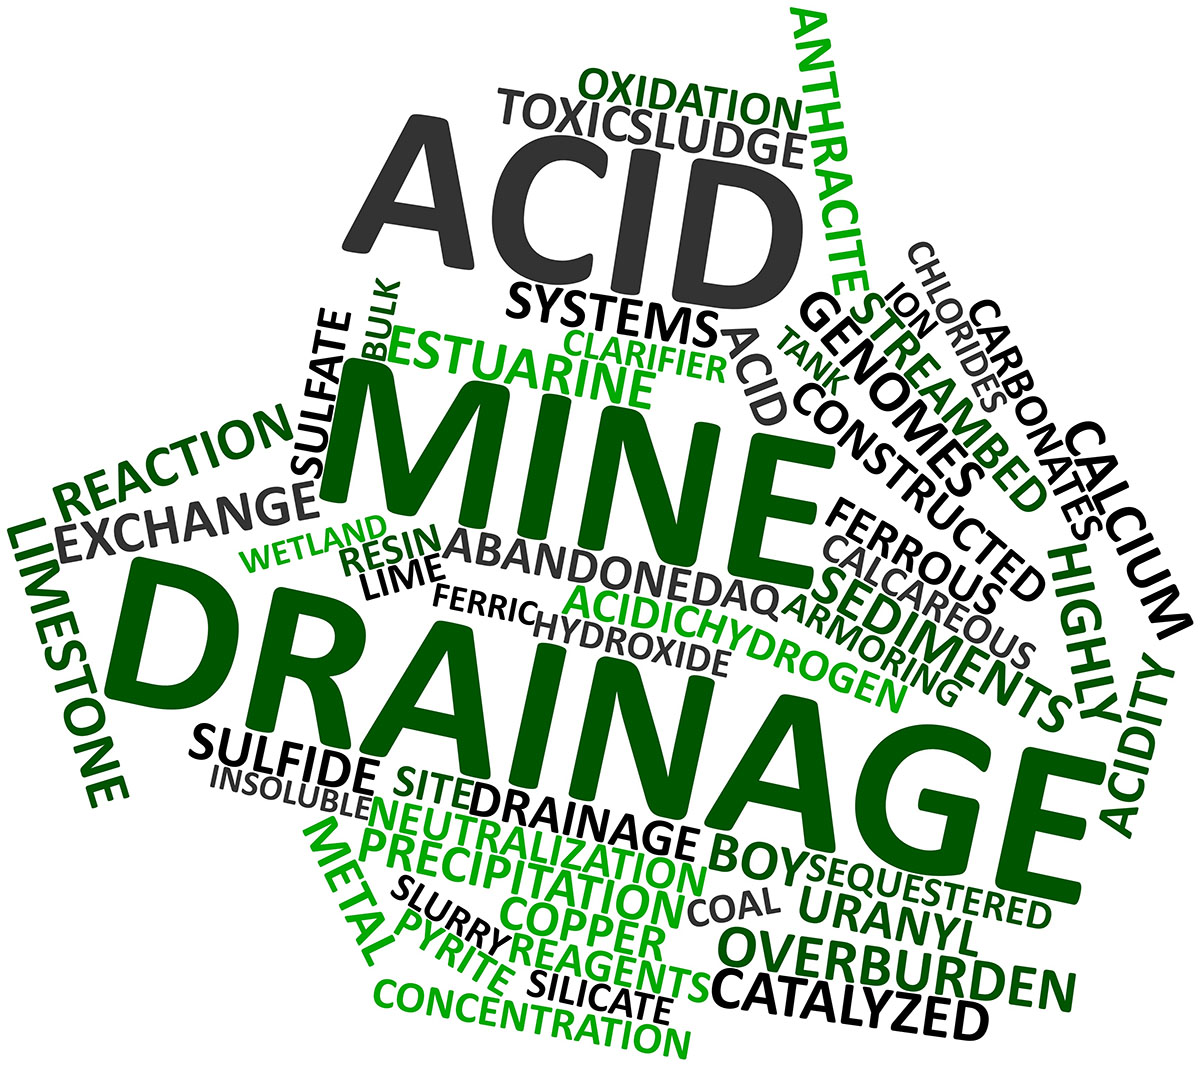 Typical language and terms associated with Acid Mine Drainage(AMD).